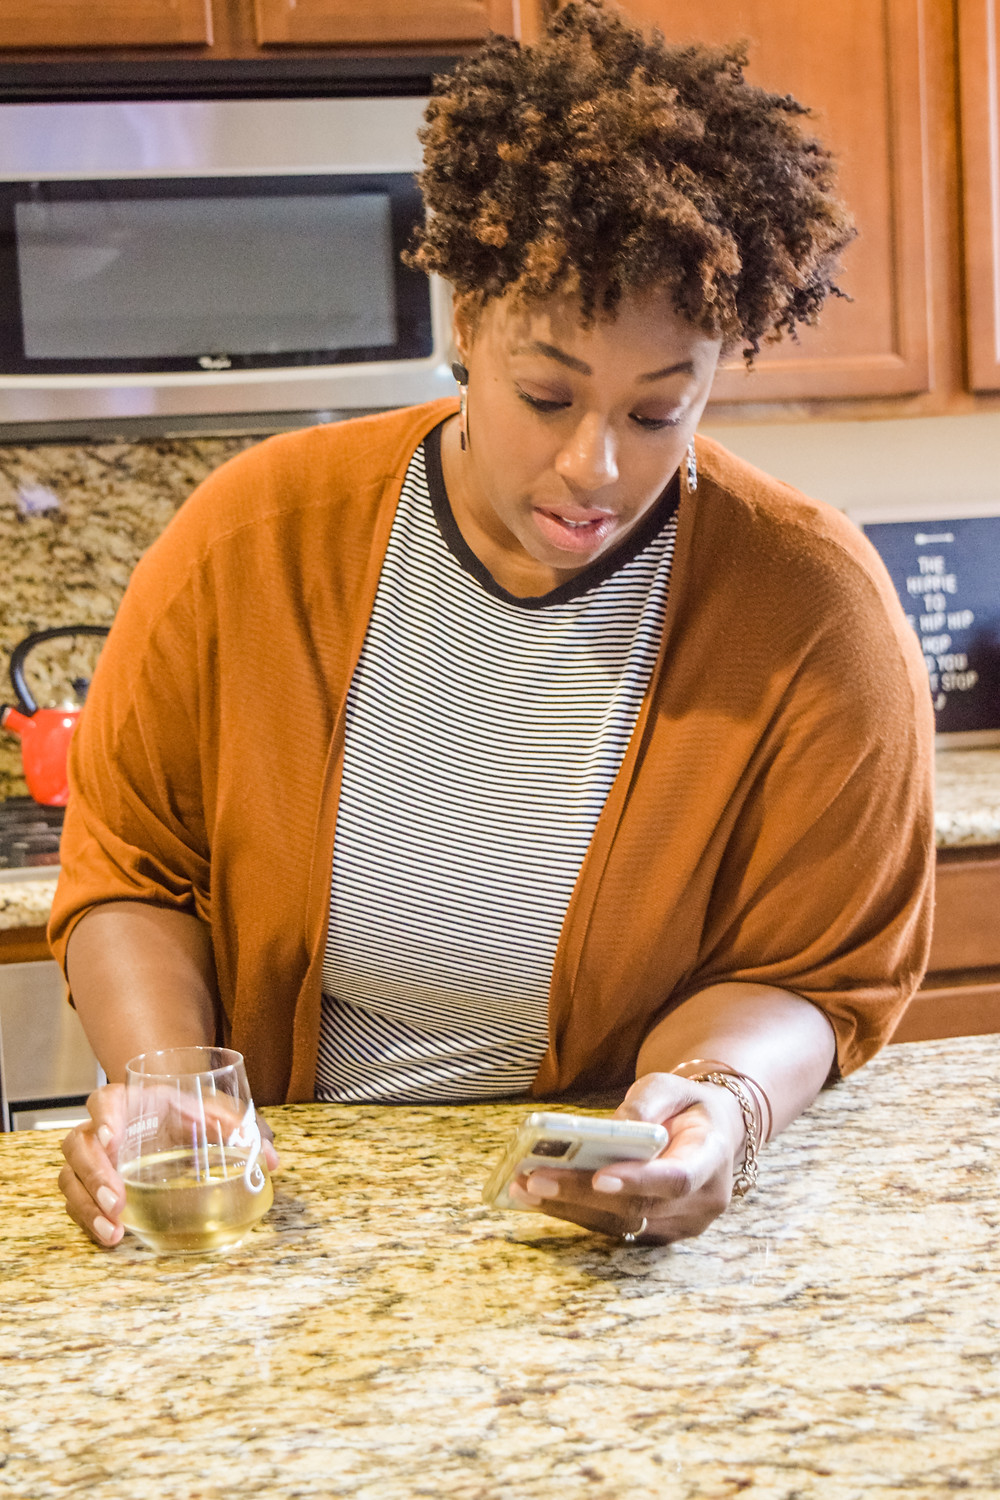 Shanell Tyus Black Mom on her phone with a glass of wine in the kitchen